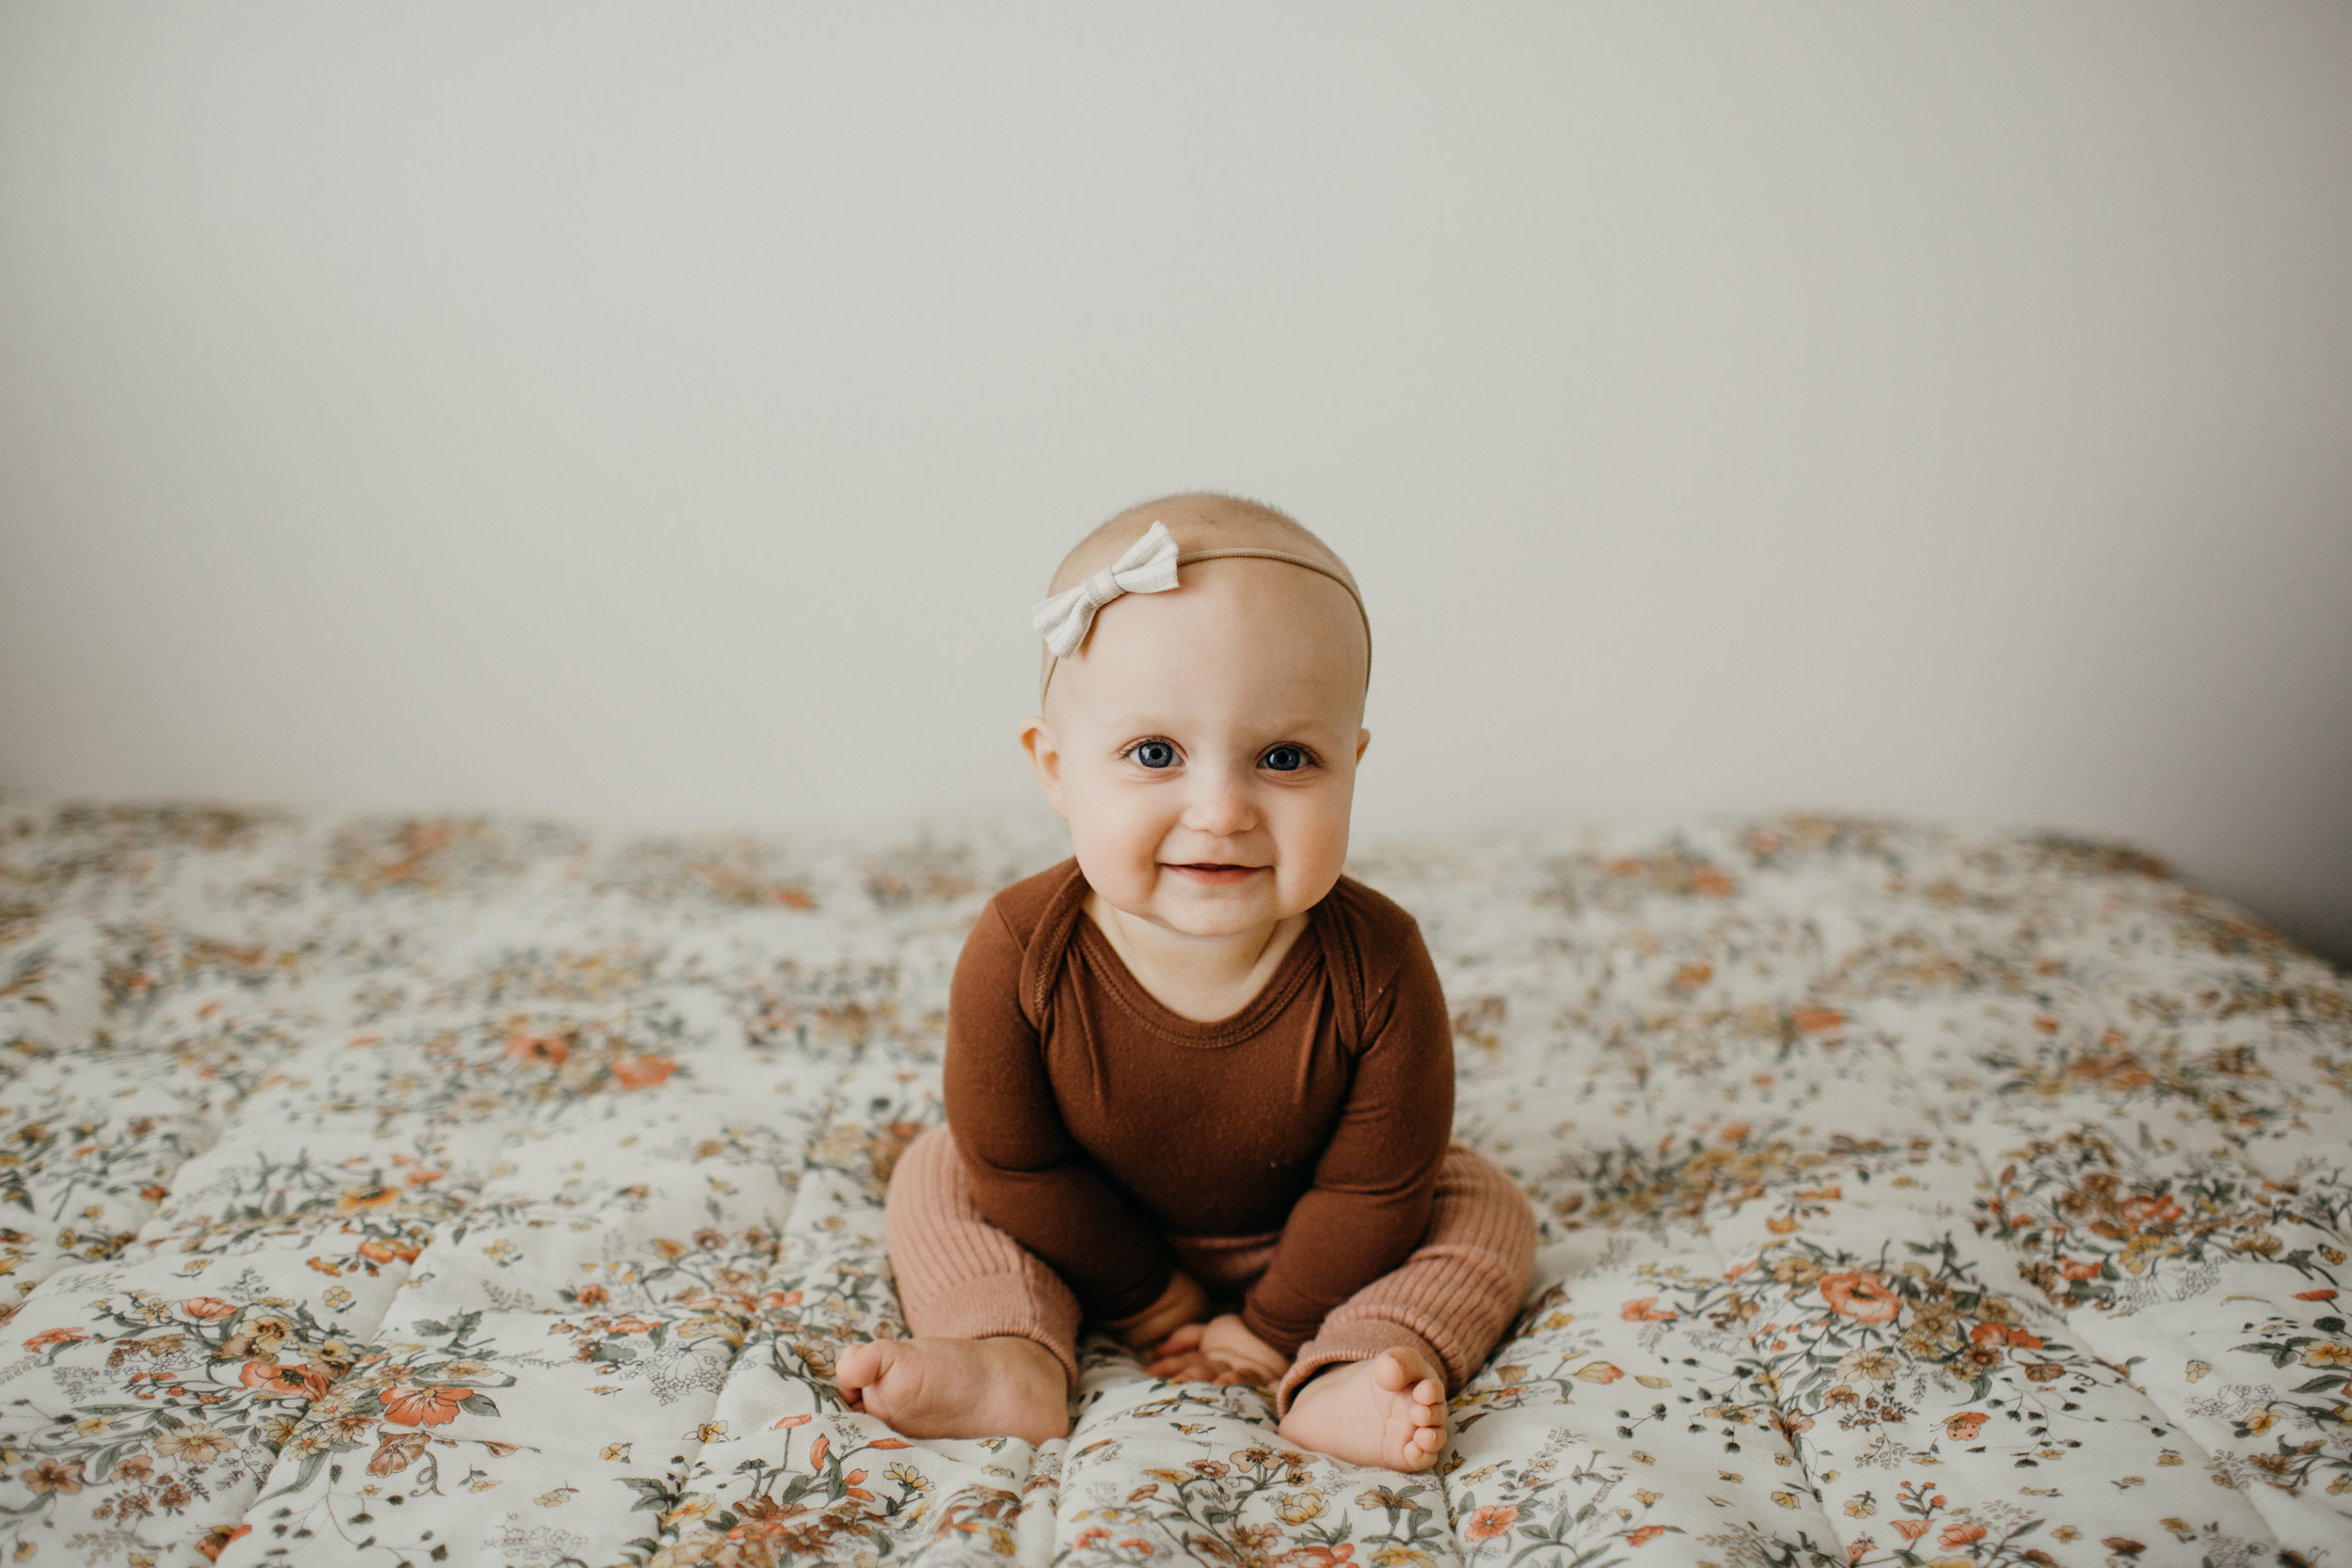 andrie_10months-3.jpg